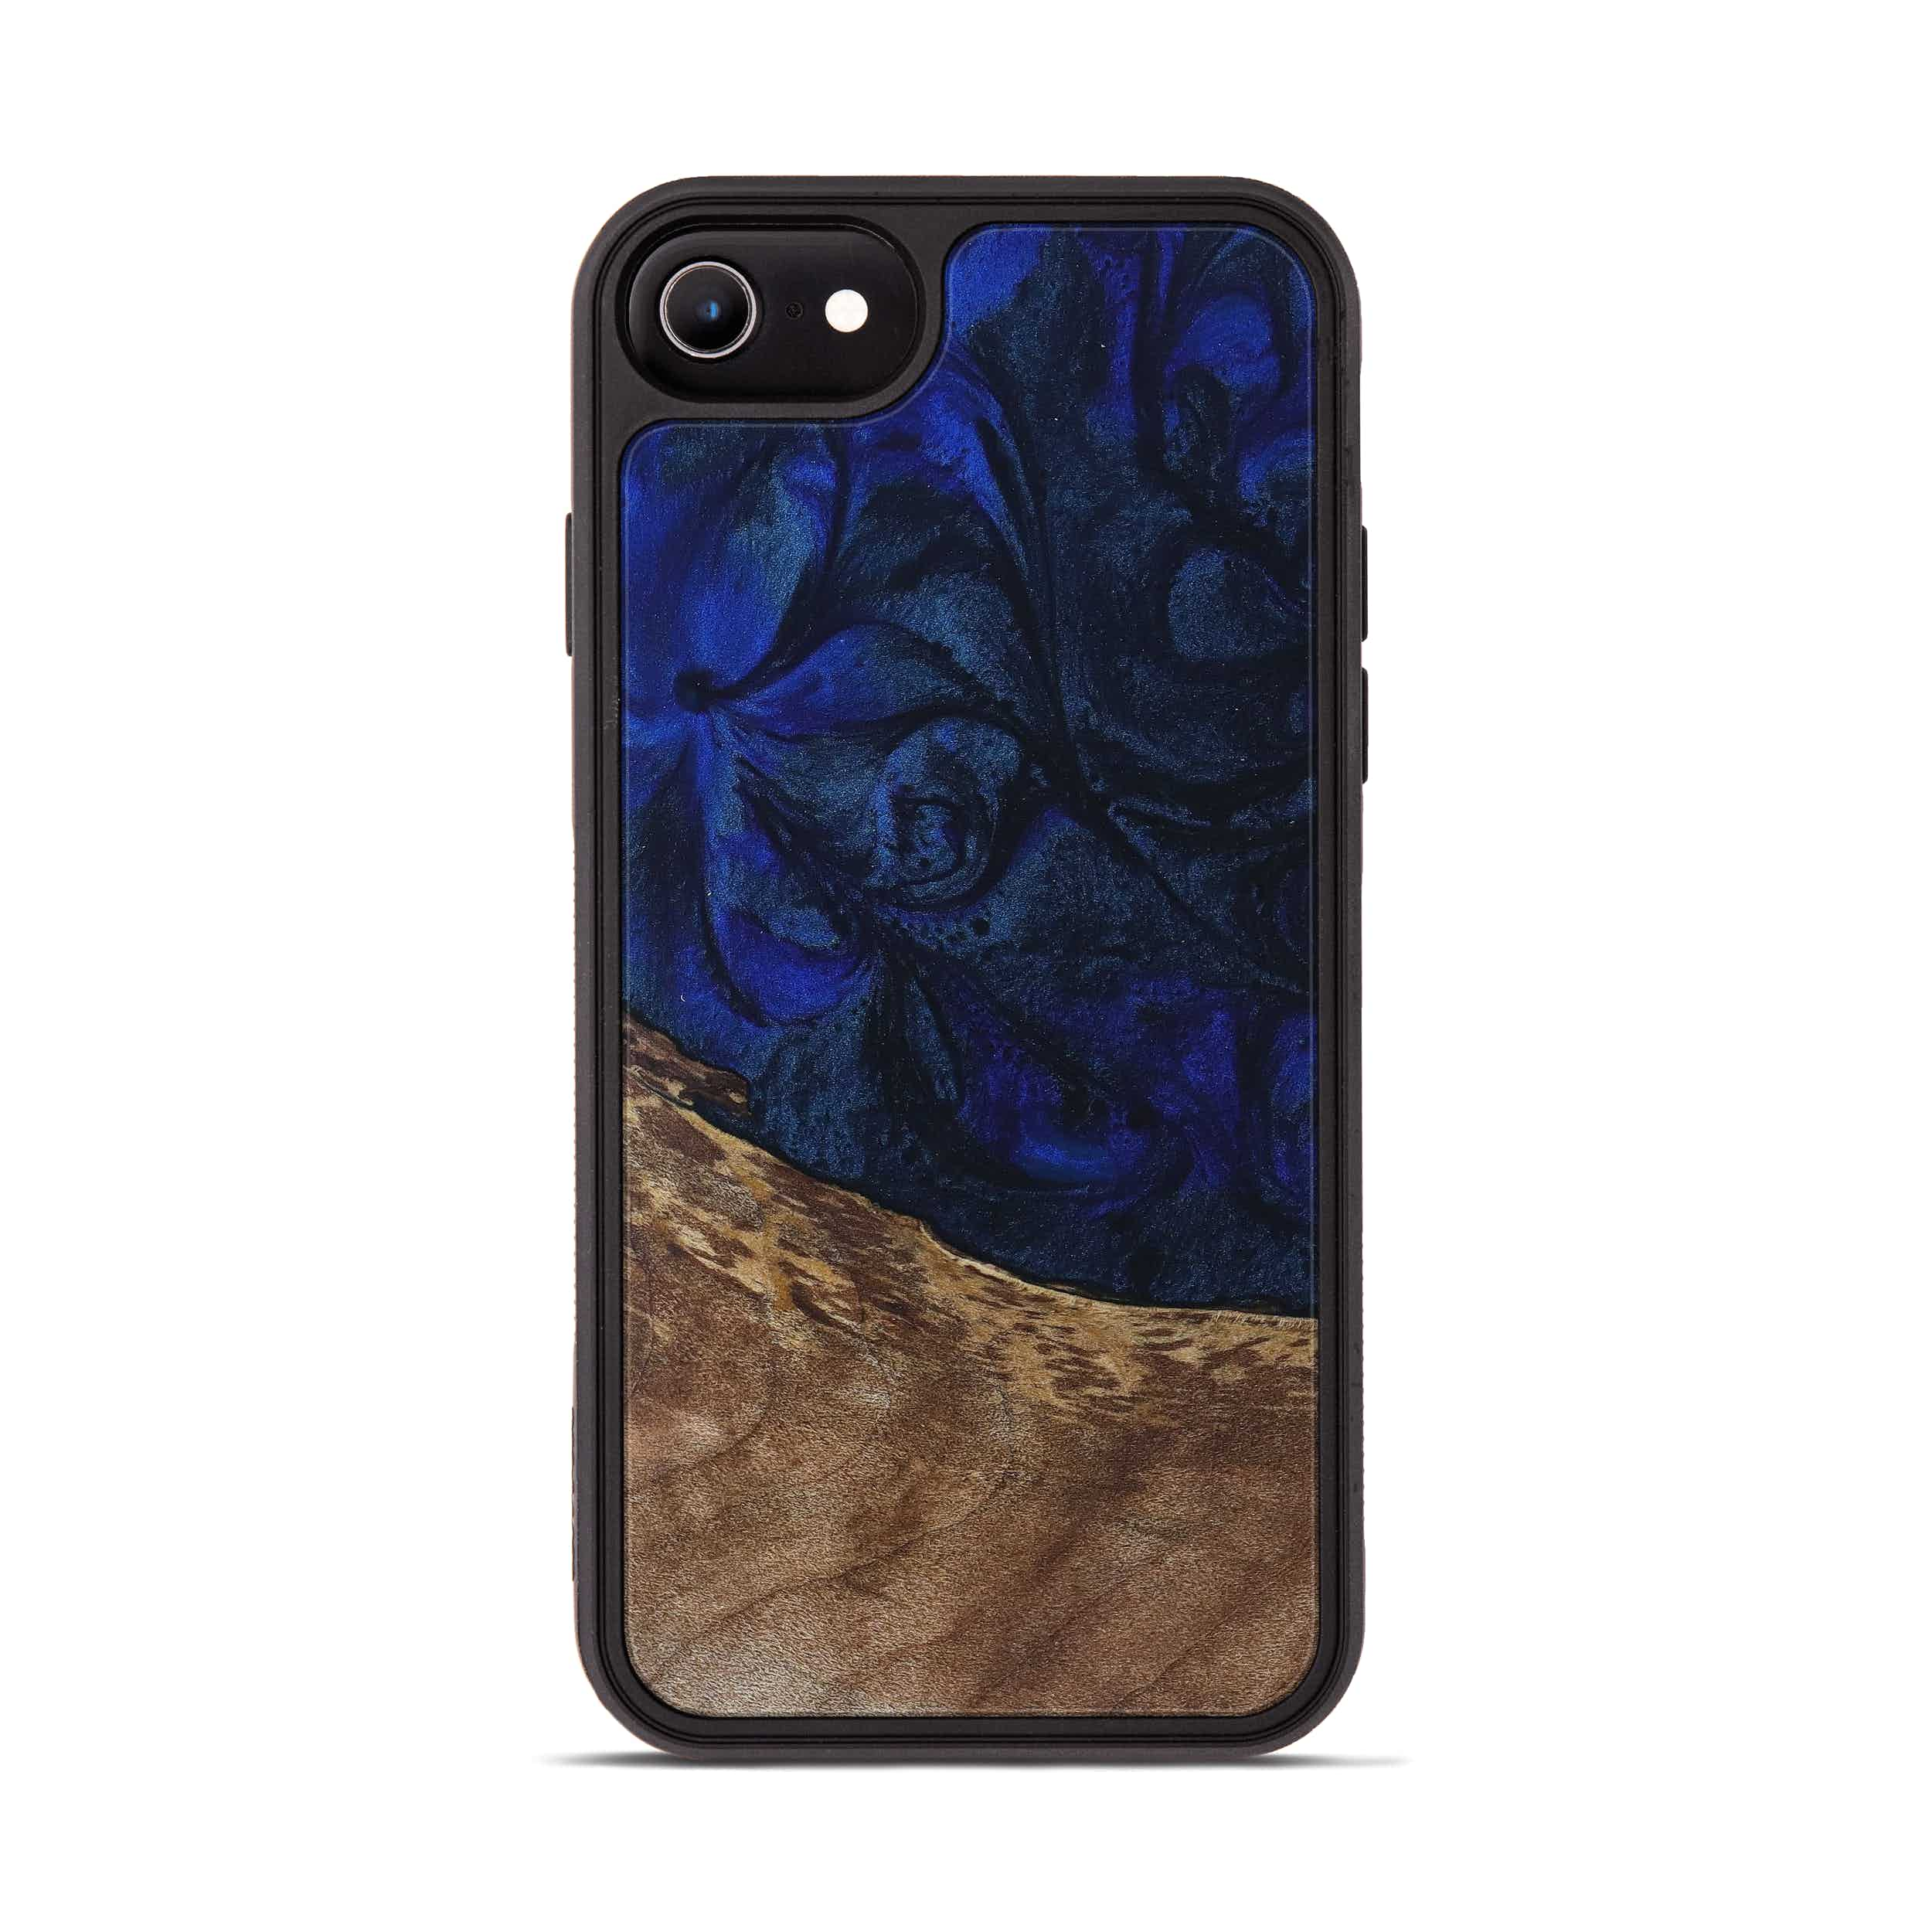 iPhone 6s Wood+Resin Phone Case - Xavier (Dark Blue, 397877)